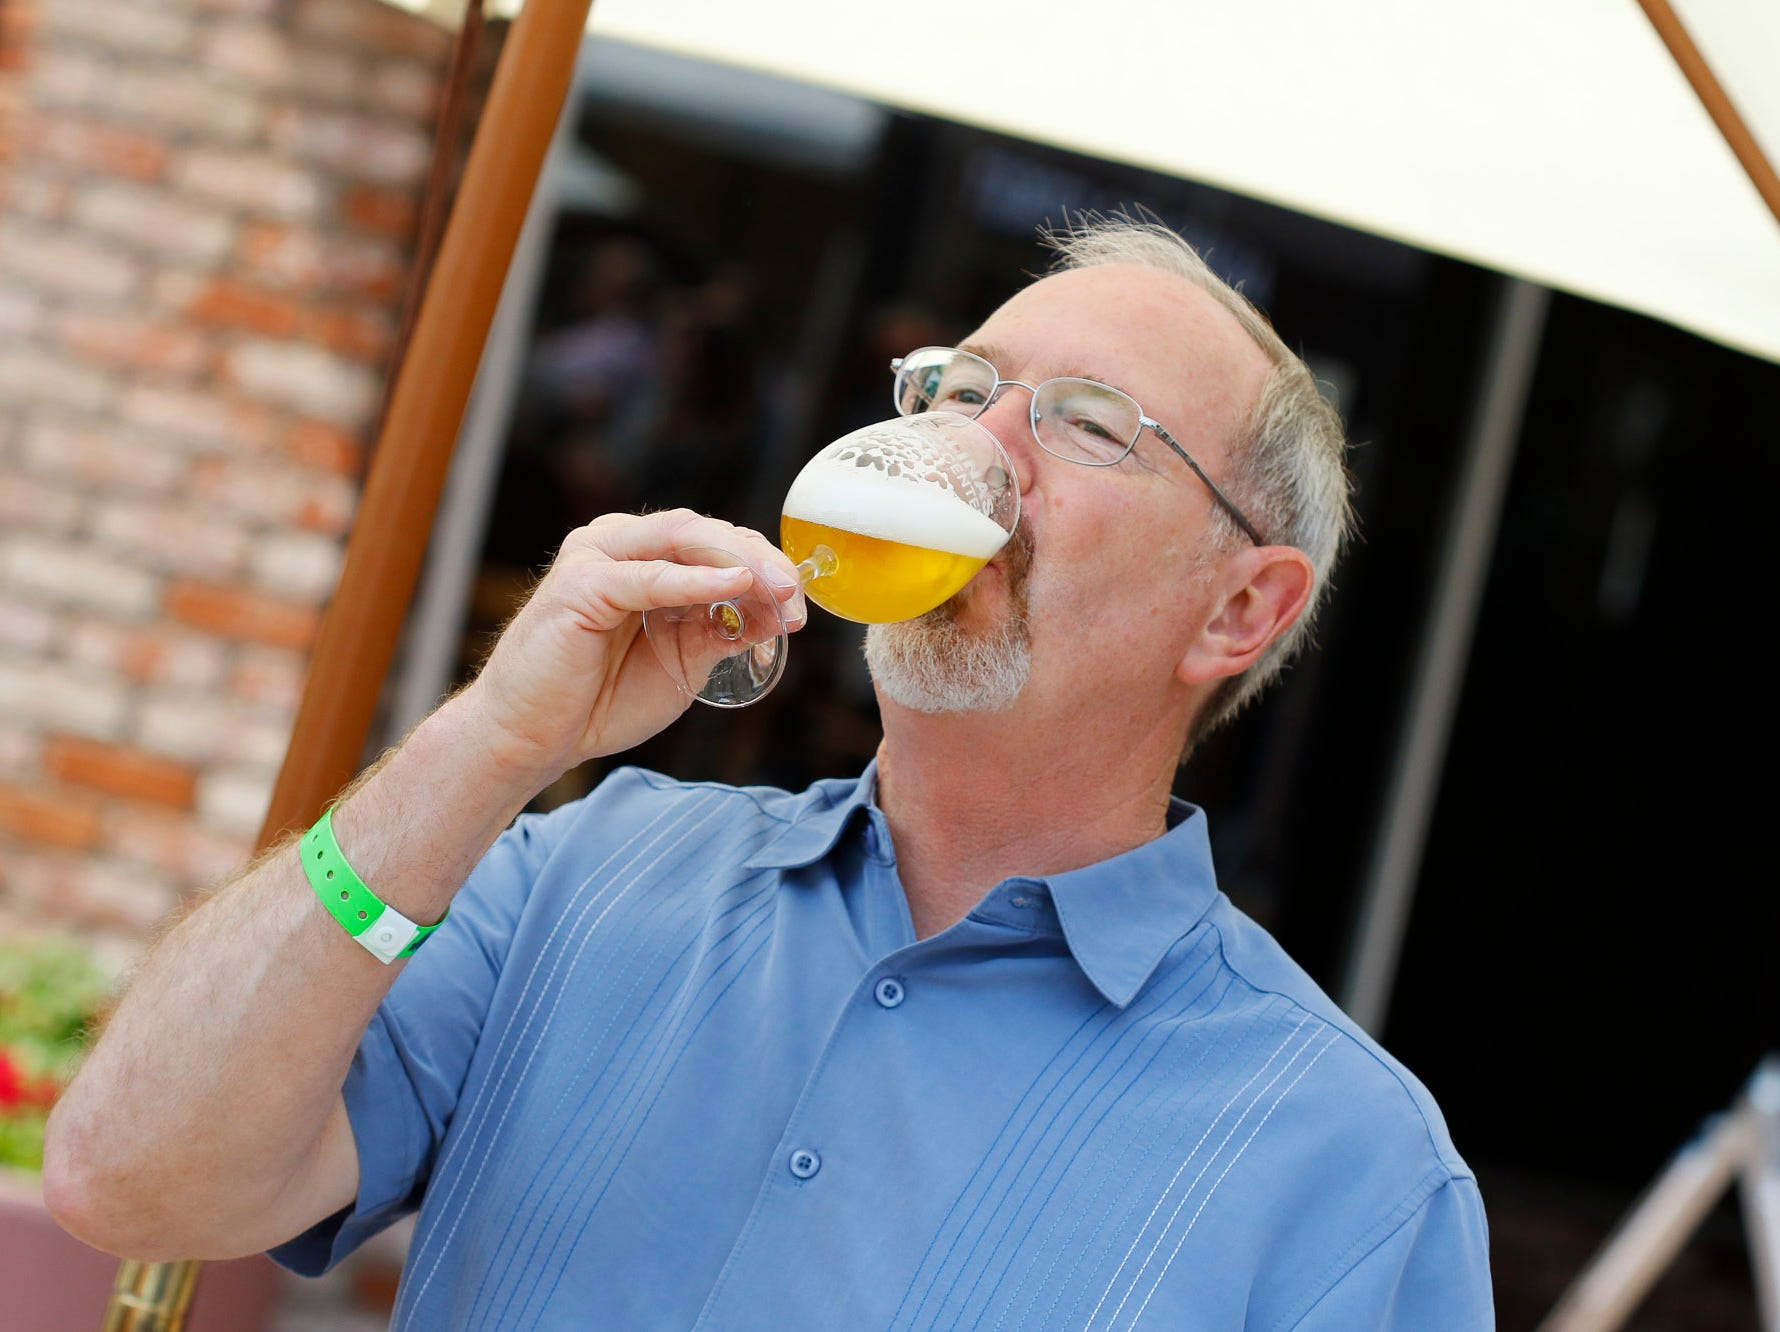 A man samples a beer during the 2018 Salinas Valley Food and Wine Festival which takes place on Main Street in Old Town Salinas on Saturday, August 11, 2018.